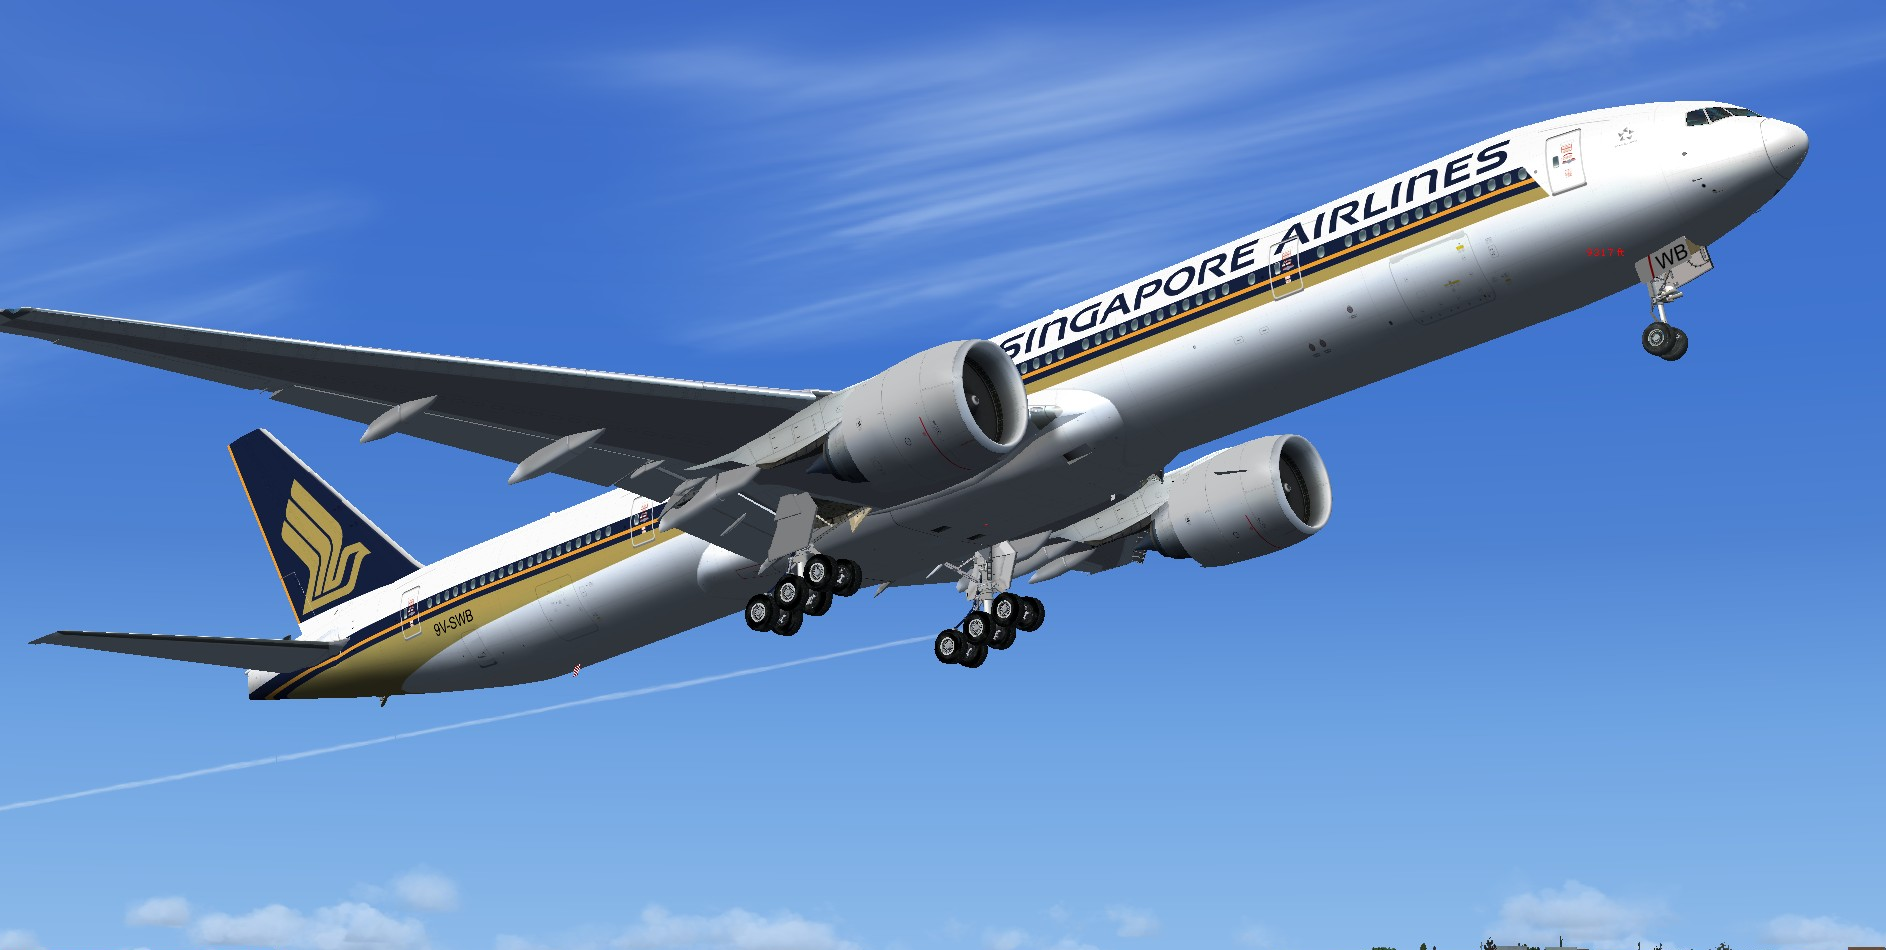 fs-freeware net - FSX Boeing 777-300ER Singapore Airlines